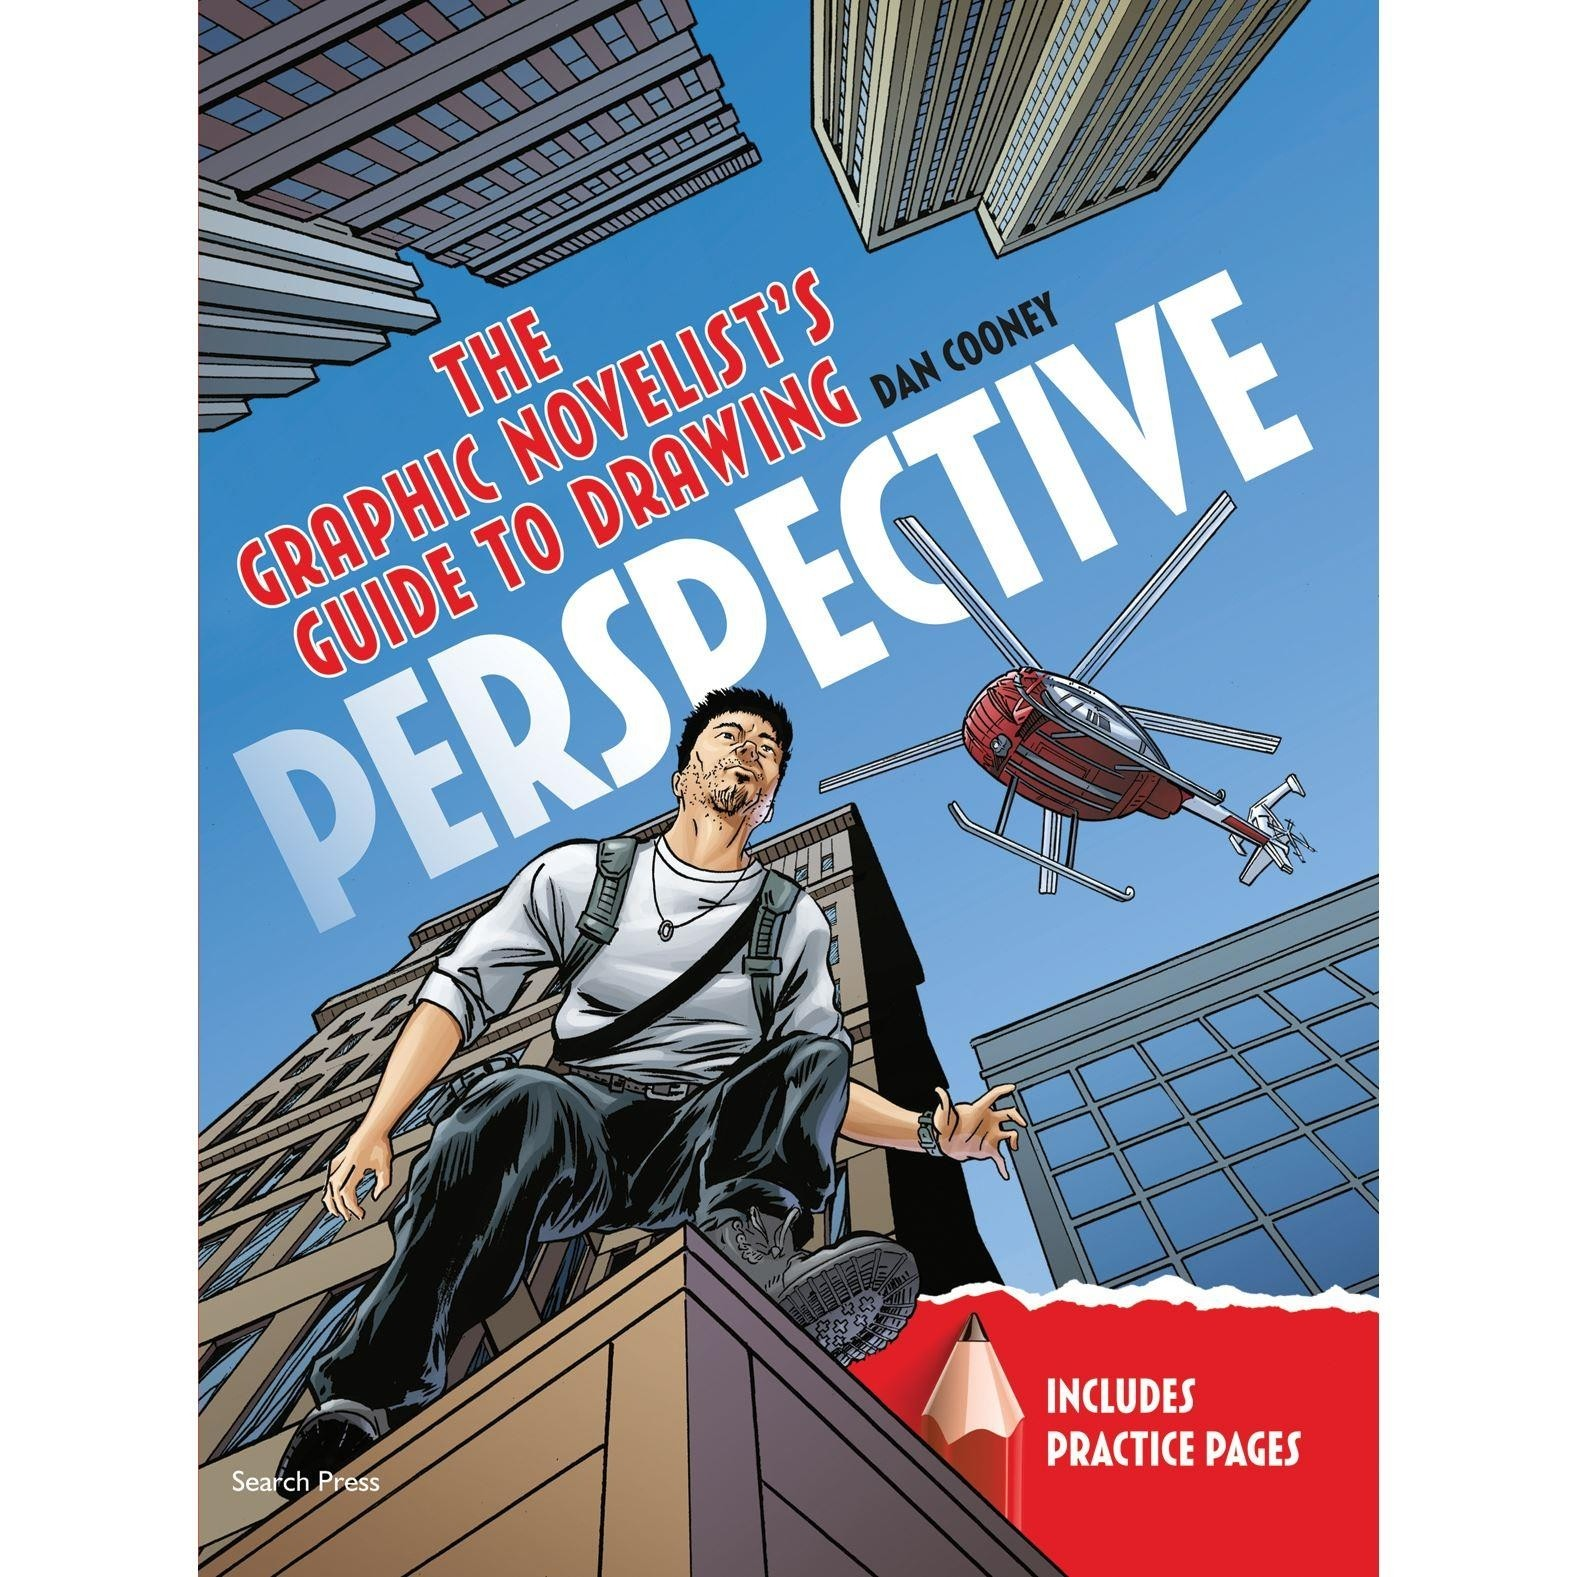 The Graphic Novelist's Guide to Drawing Perspective by Dan Cooney